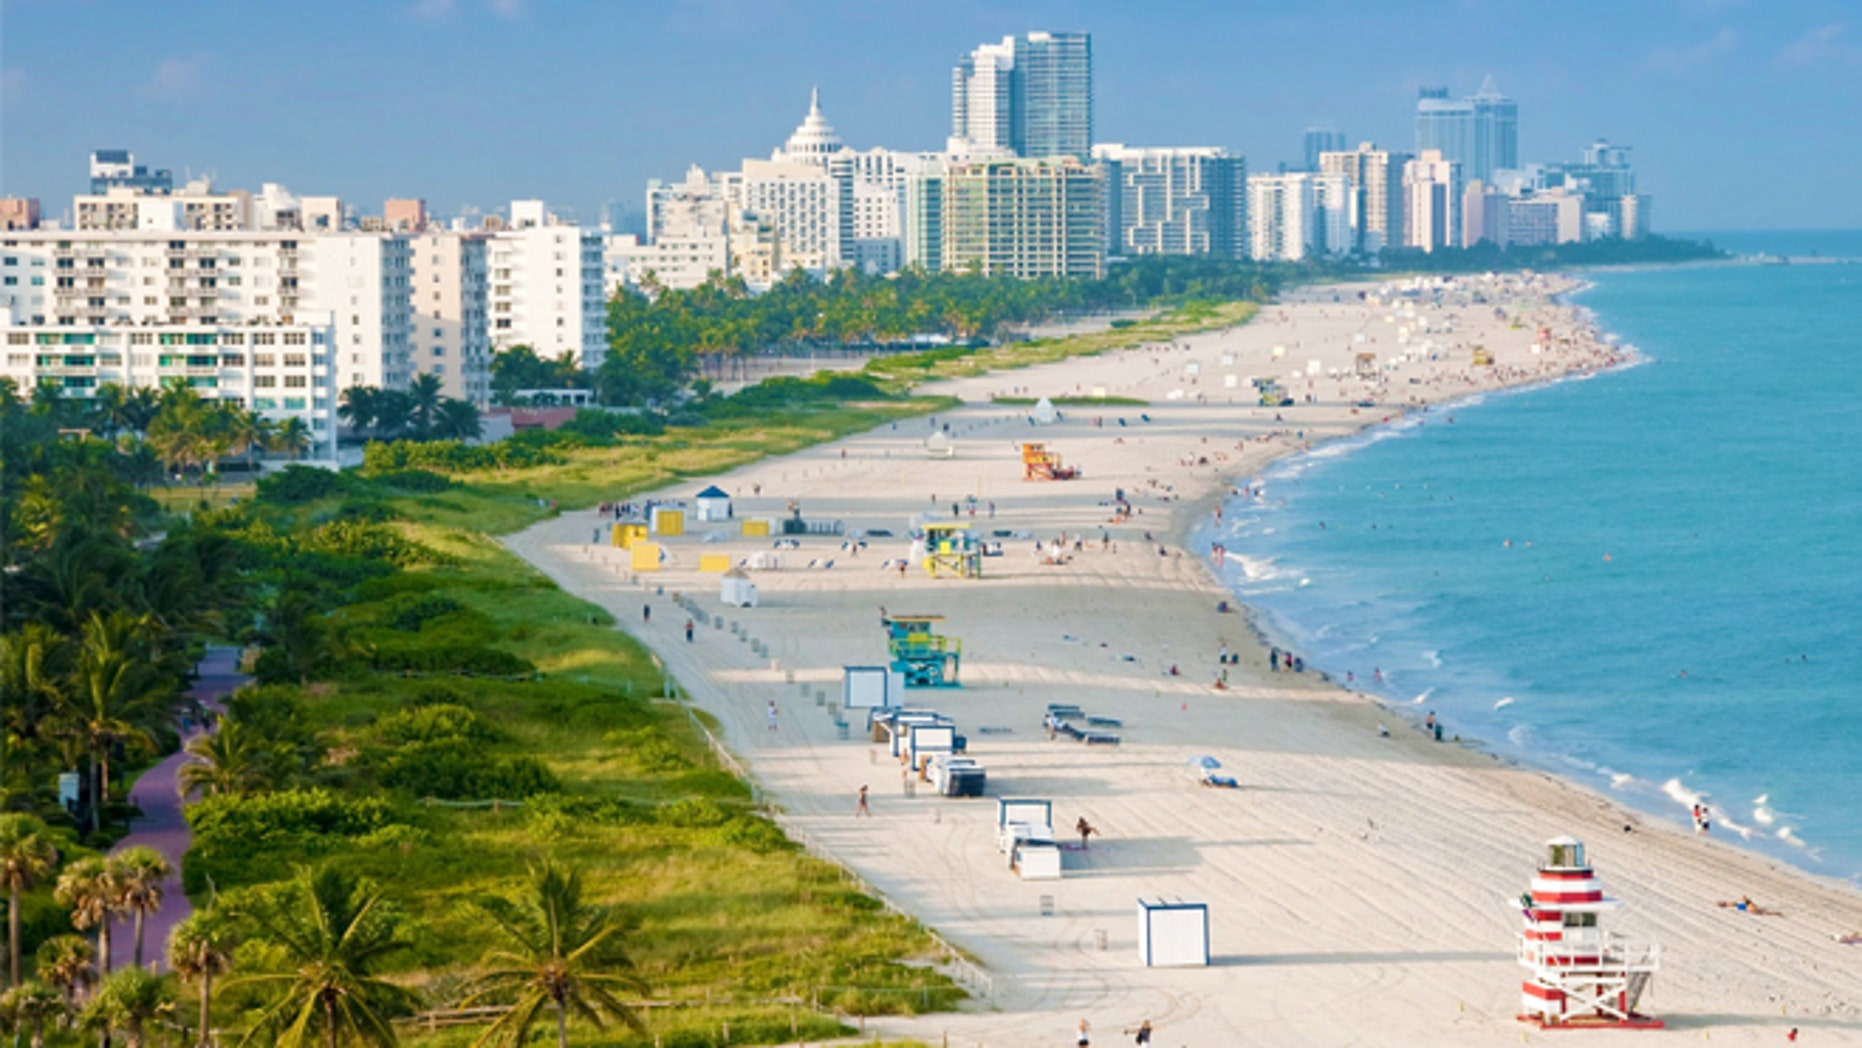 Miami International Airport had 45.7 million domestic visitors for the first half of 2015.